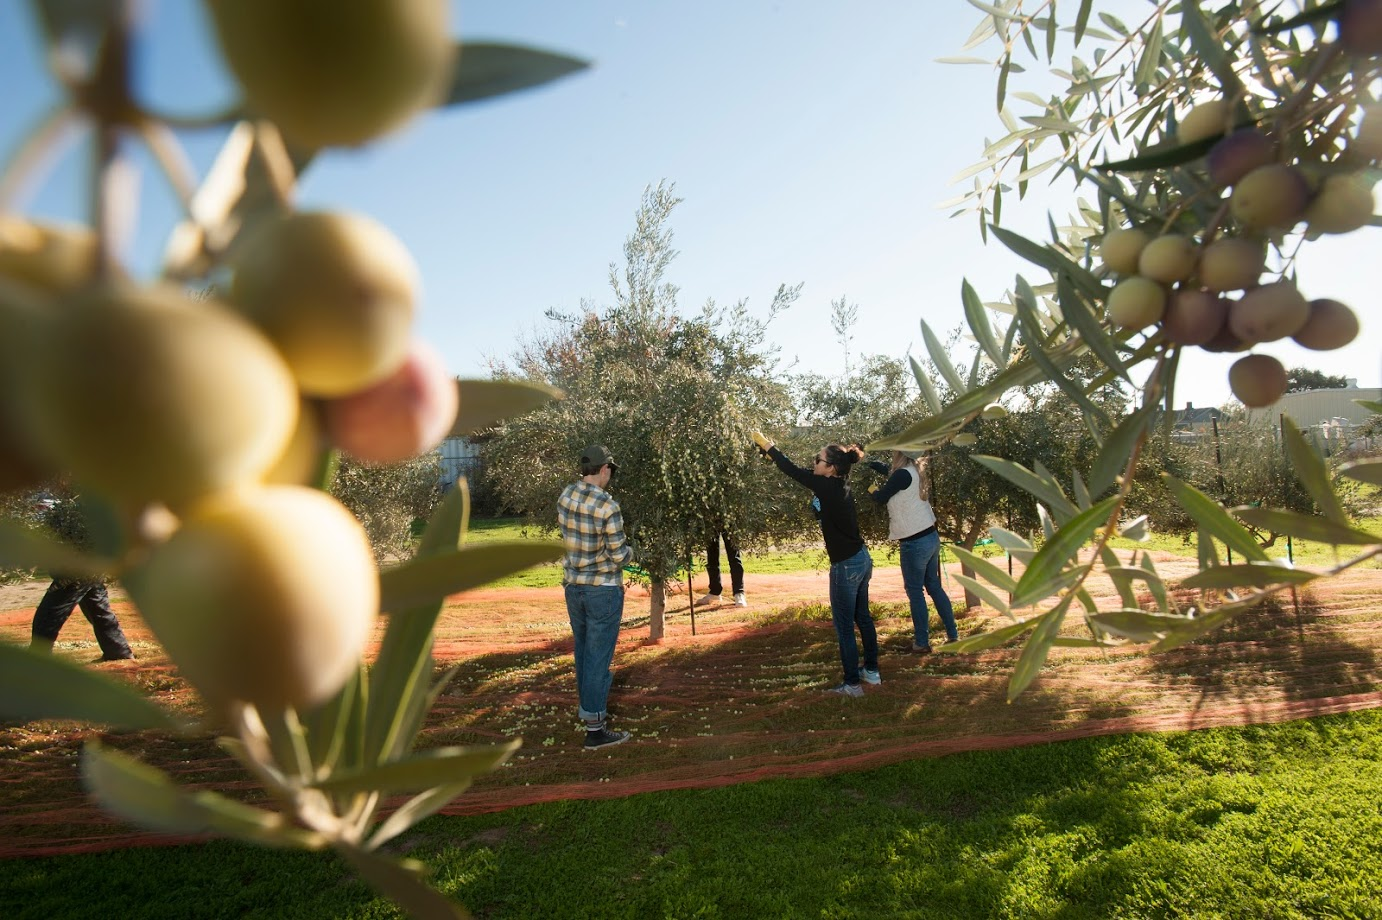 Students harvest olives by hand from young trees in the campus research grove. (Gregory Urquiaga/UC Davis)